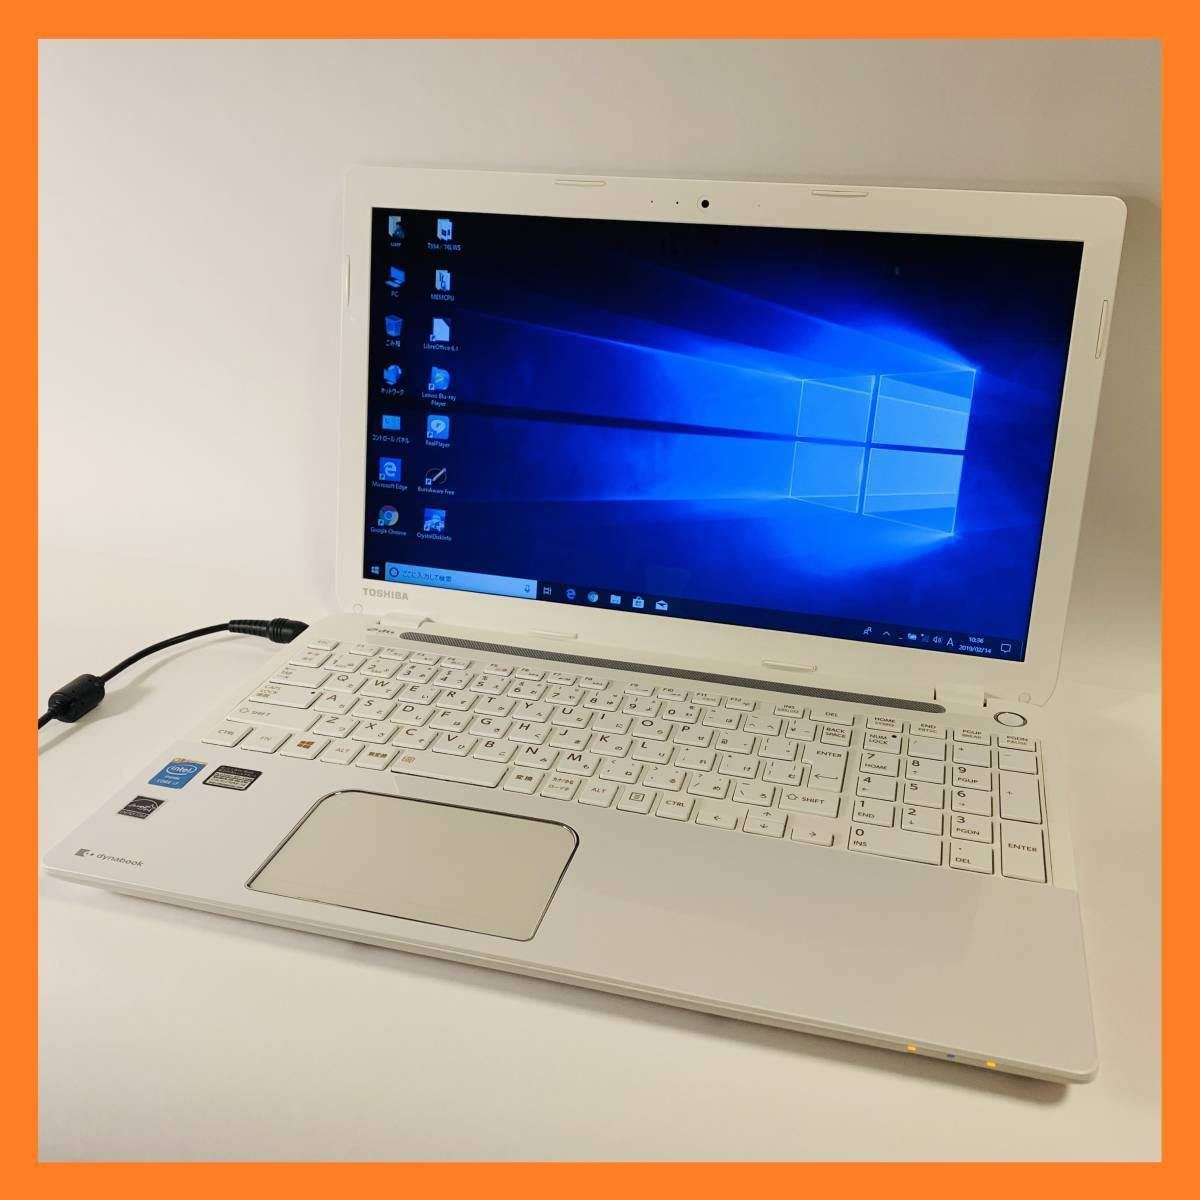 ◆東芝 Core i7 新品SSD500GB メモリ16GB Windows 10◆dynabook T554/76LWS◆